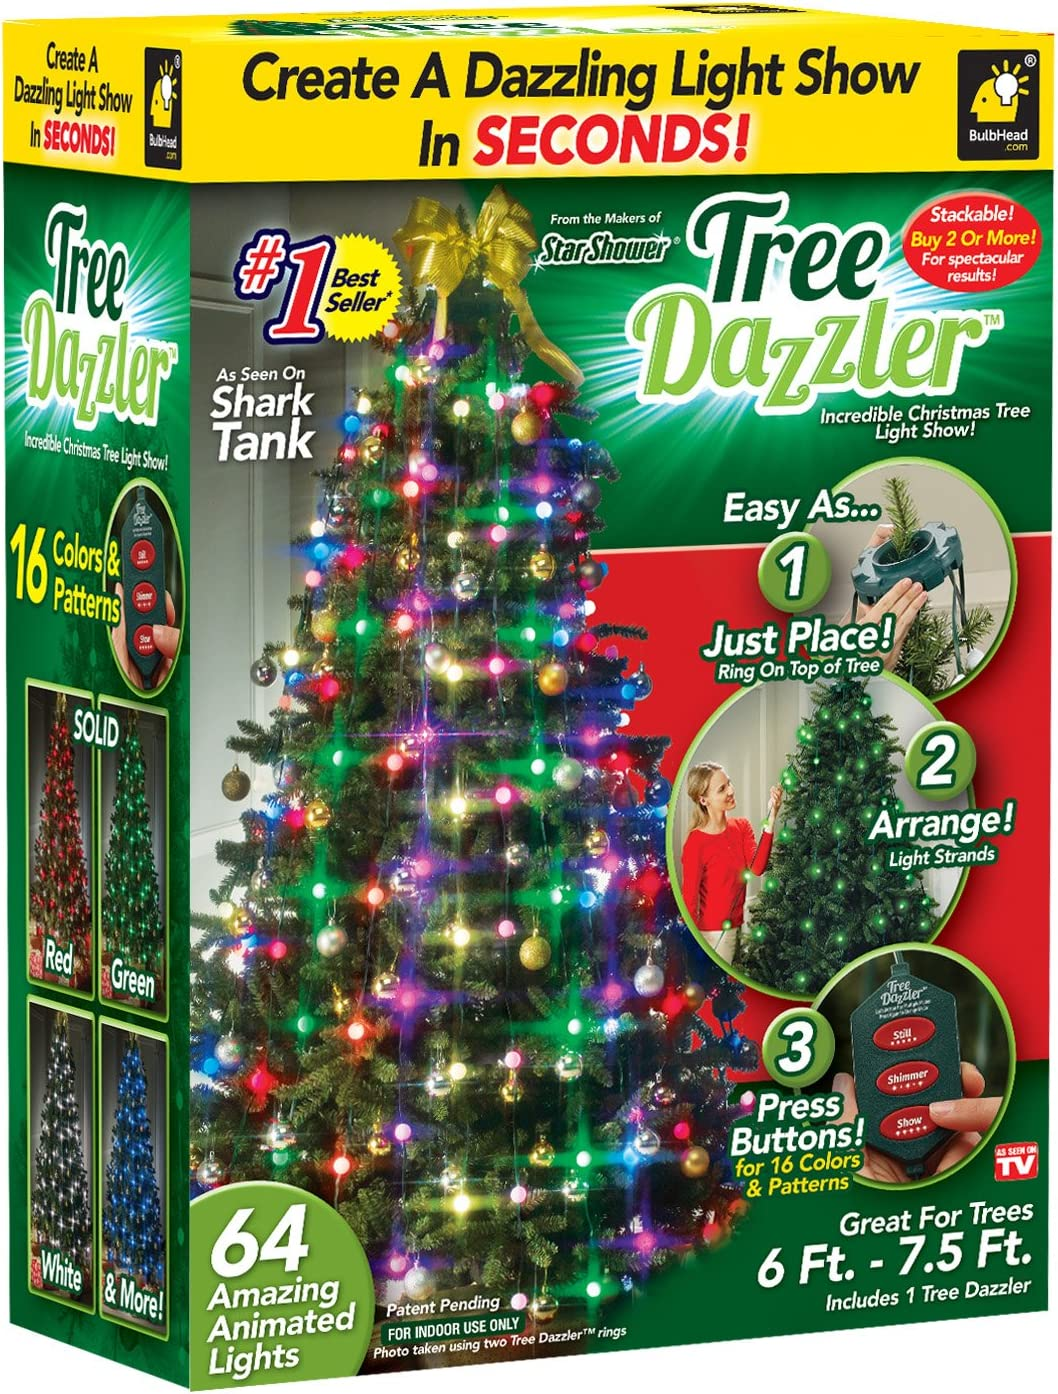 Star Shower Tree Dazzler Led Light Show By Bulbhead 16 Light Patterns Amazon Com